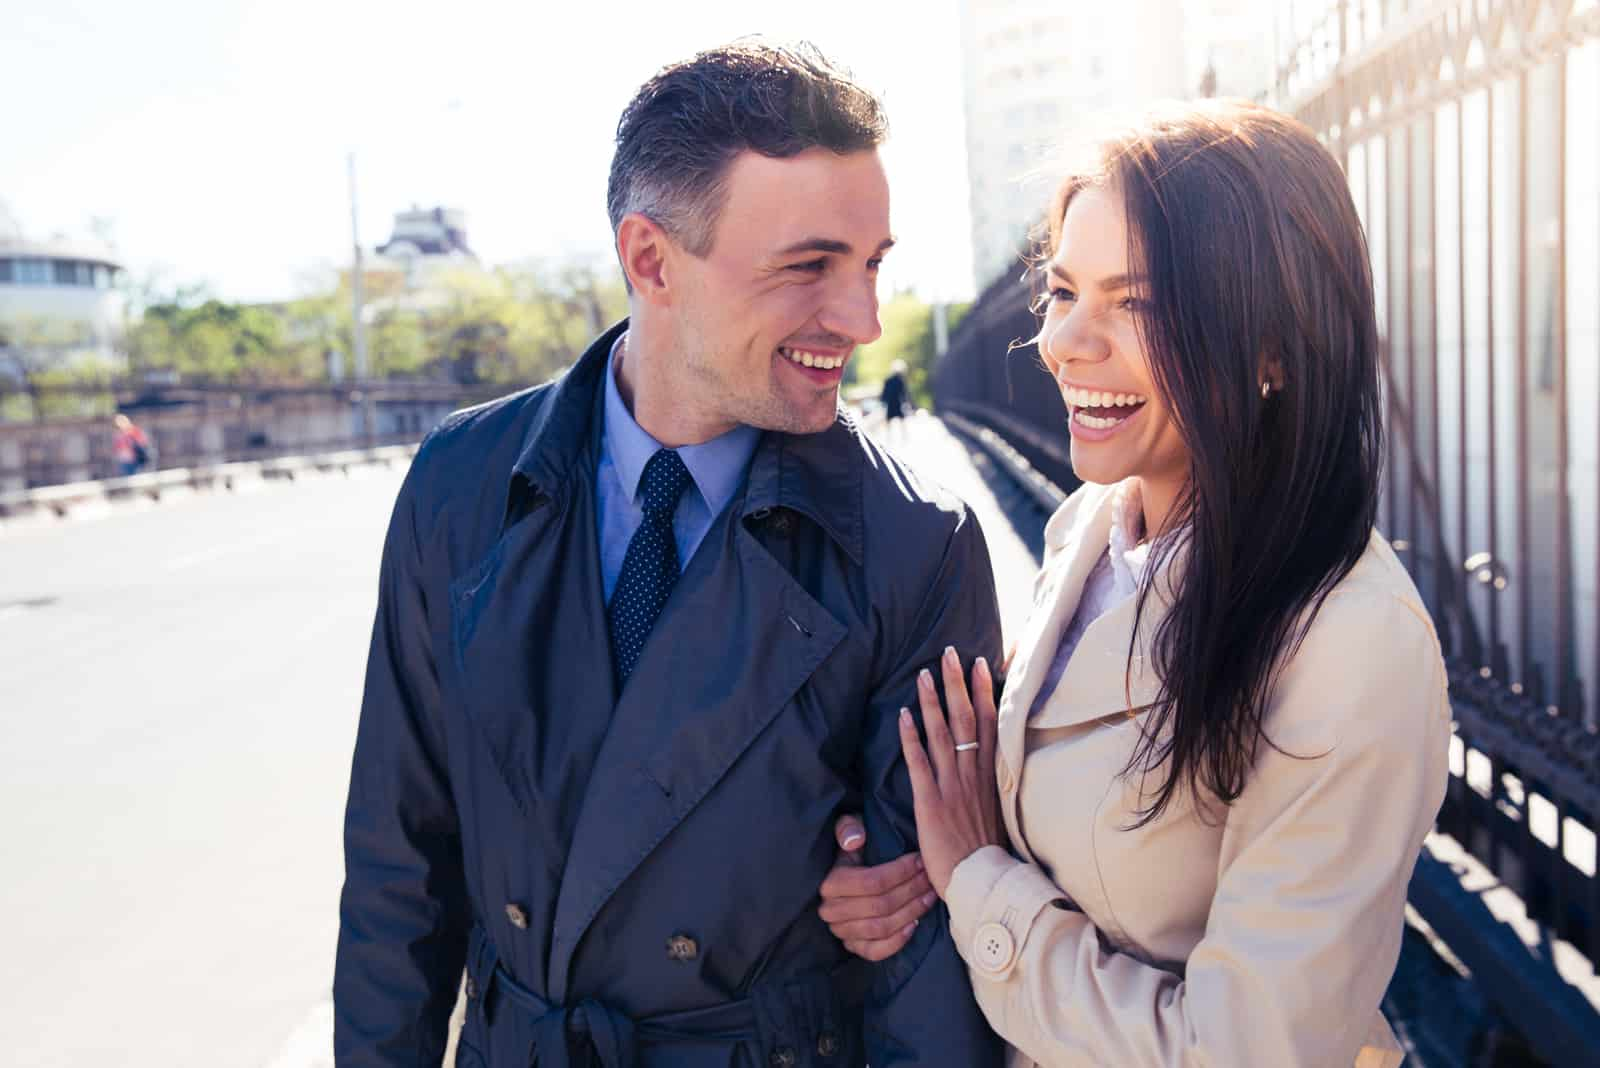 a smiling man and woman stand in the street